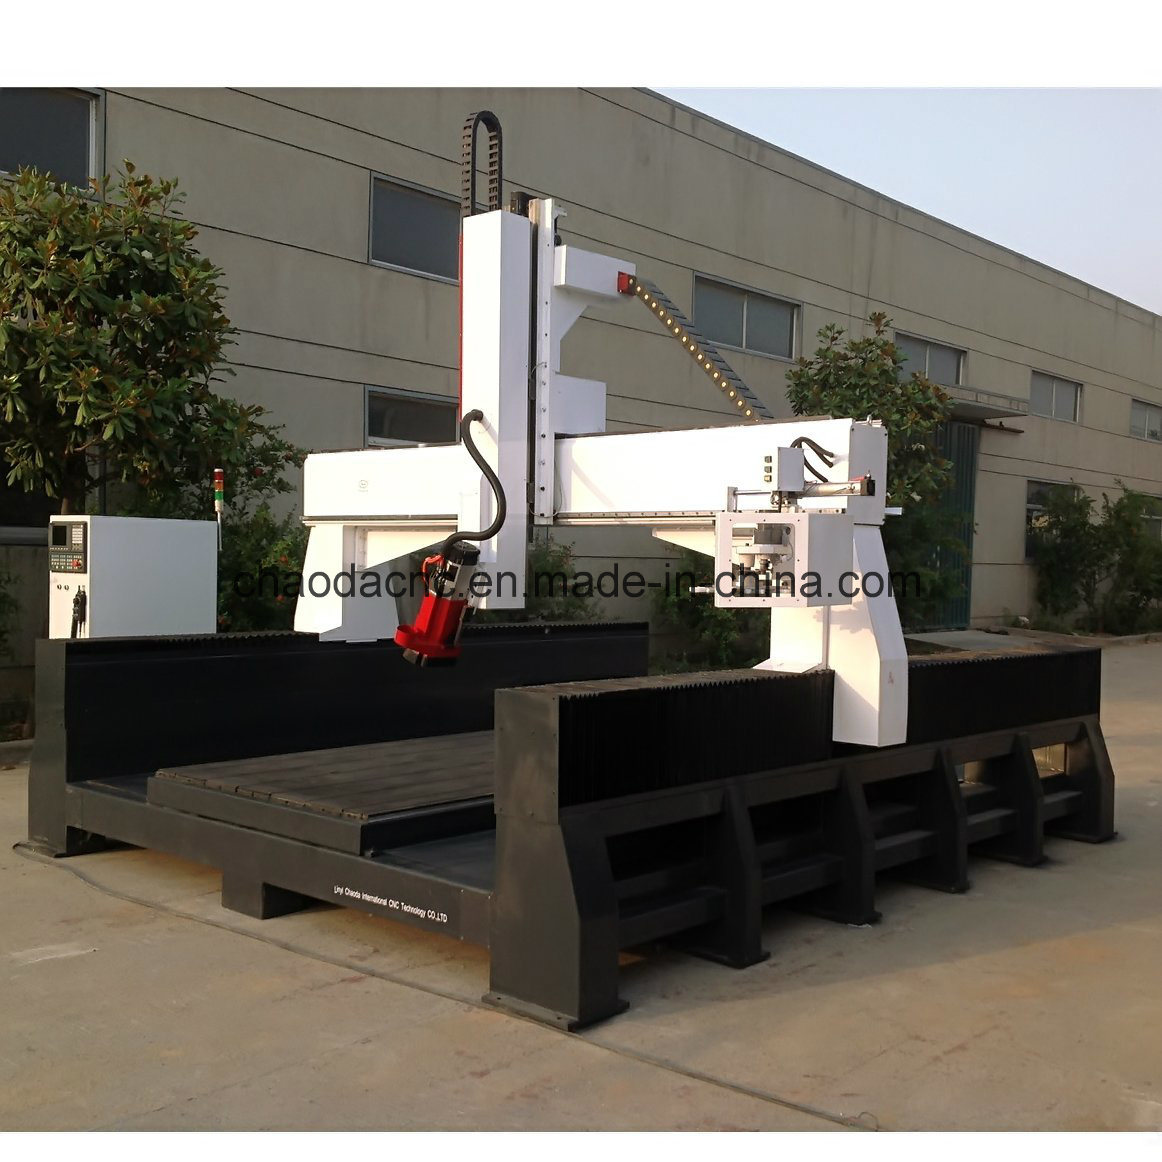 Jcs1530hl 3D Mold Making Machine 4 Axis Router Carver CNC pictures & photos